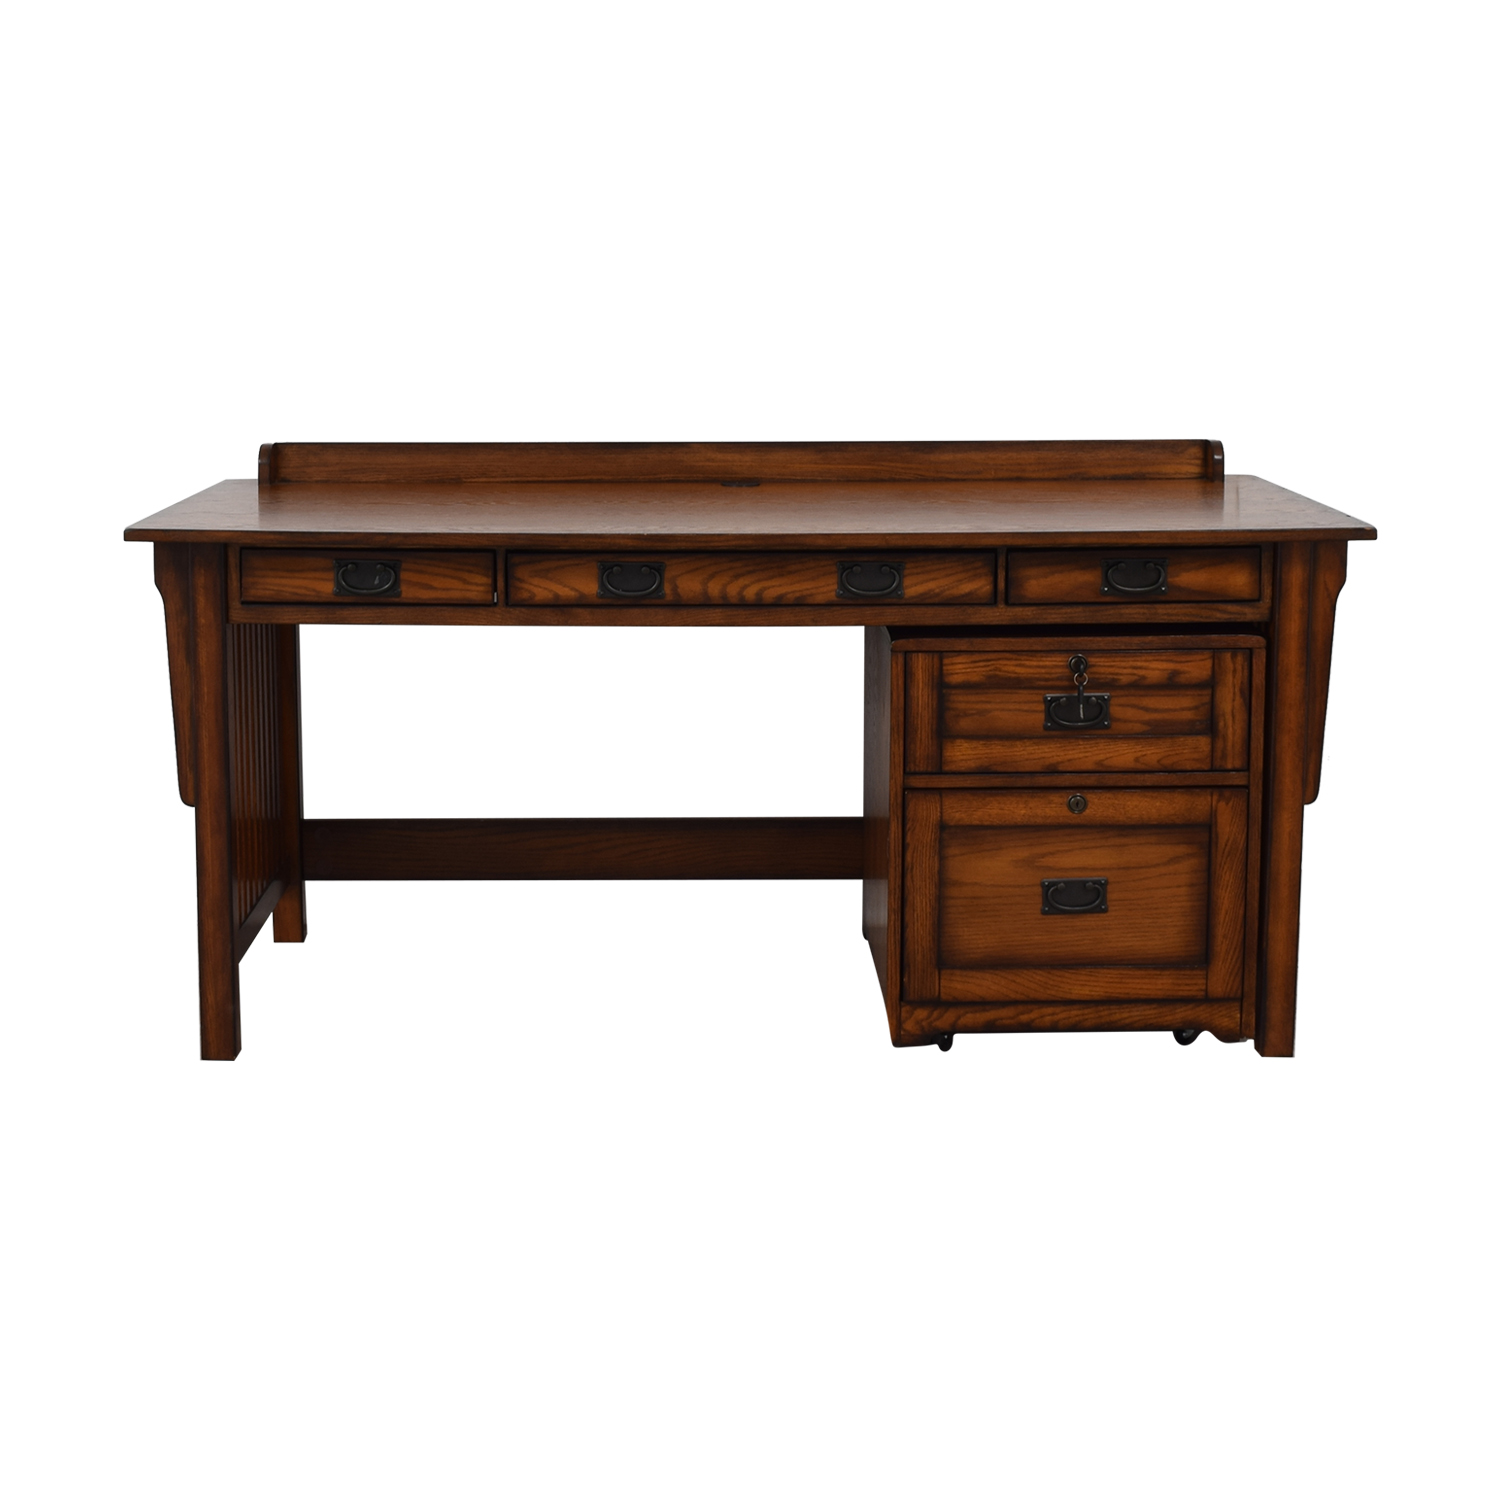 Hammary Furniture Hammary Furniture Wood Desk and File Cabinet on sale